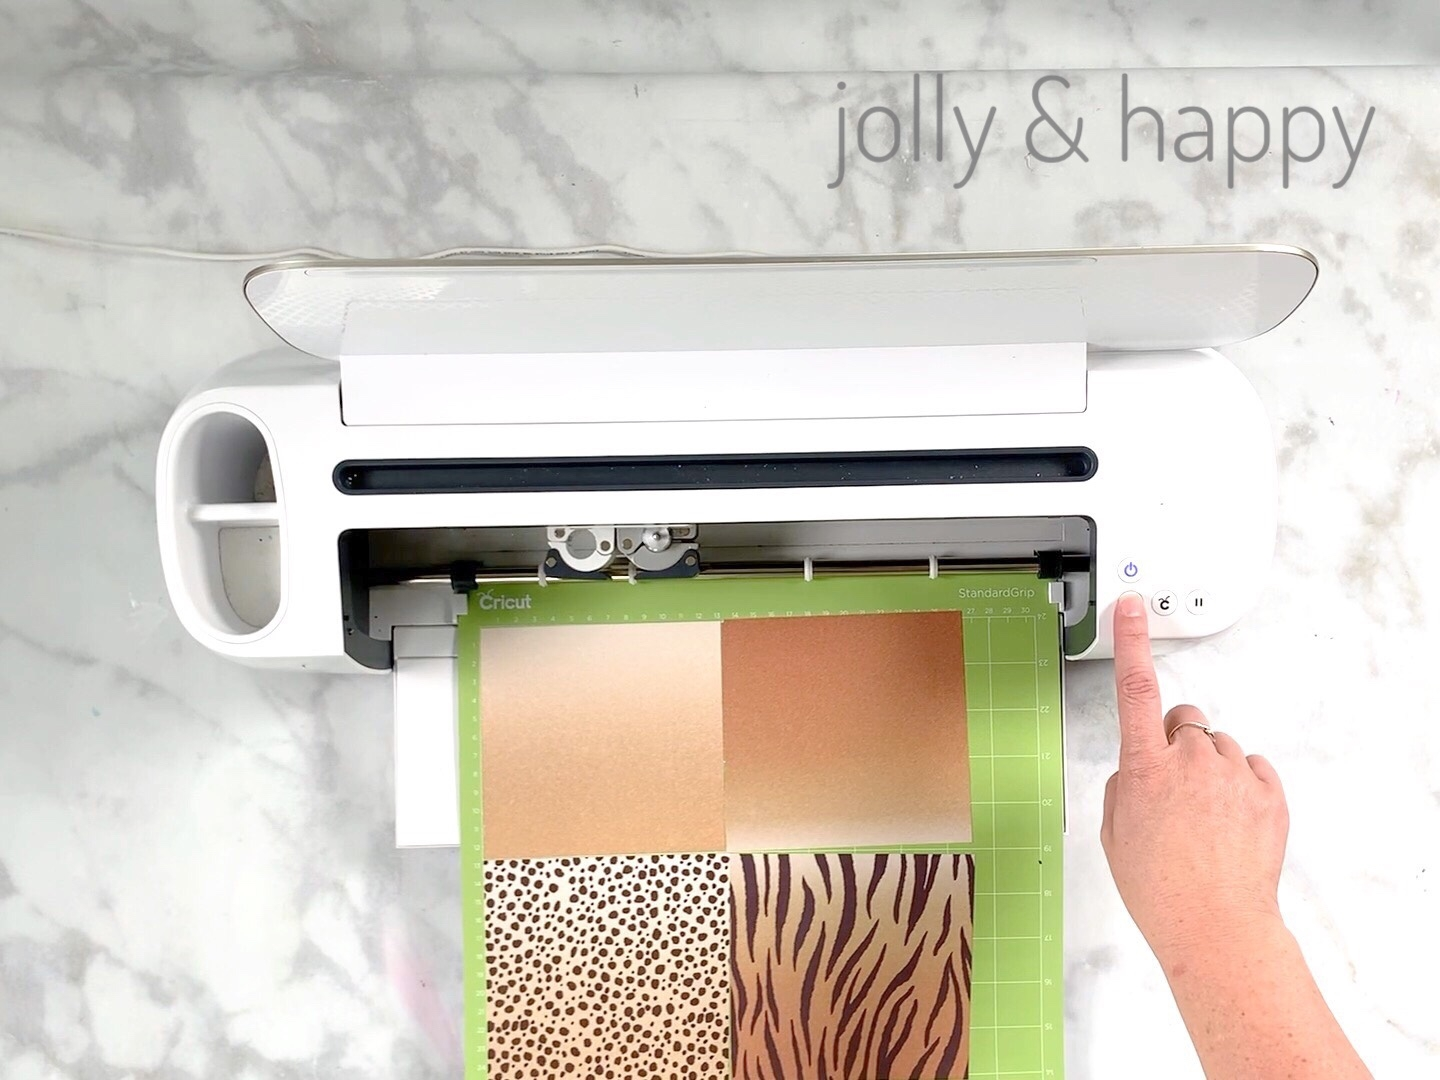 Cut the transfer sheets with Cricut Maker machine